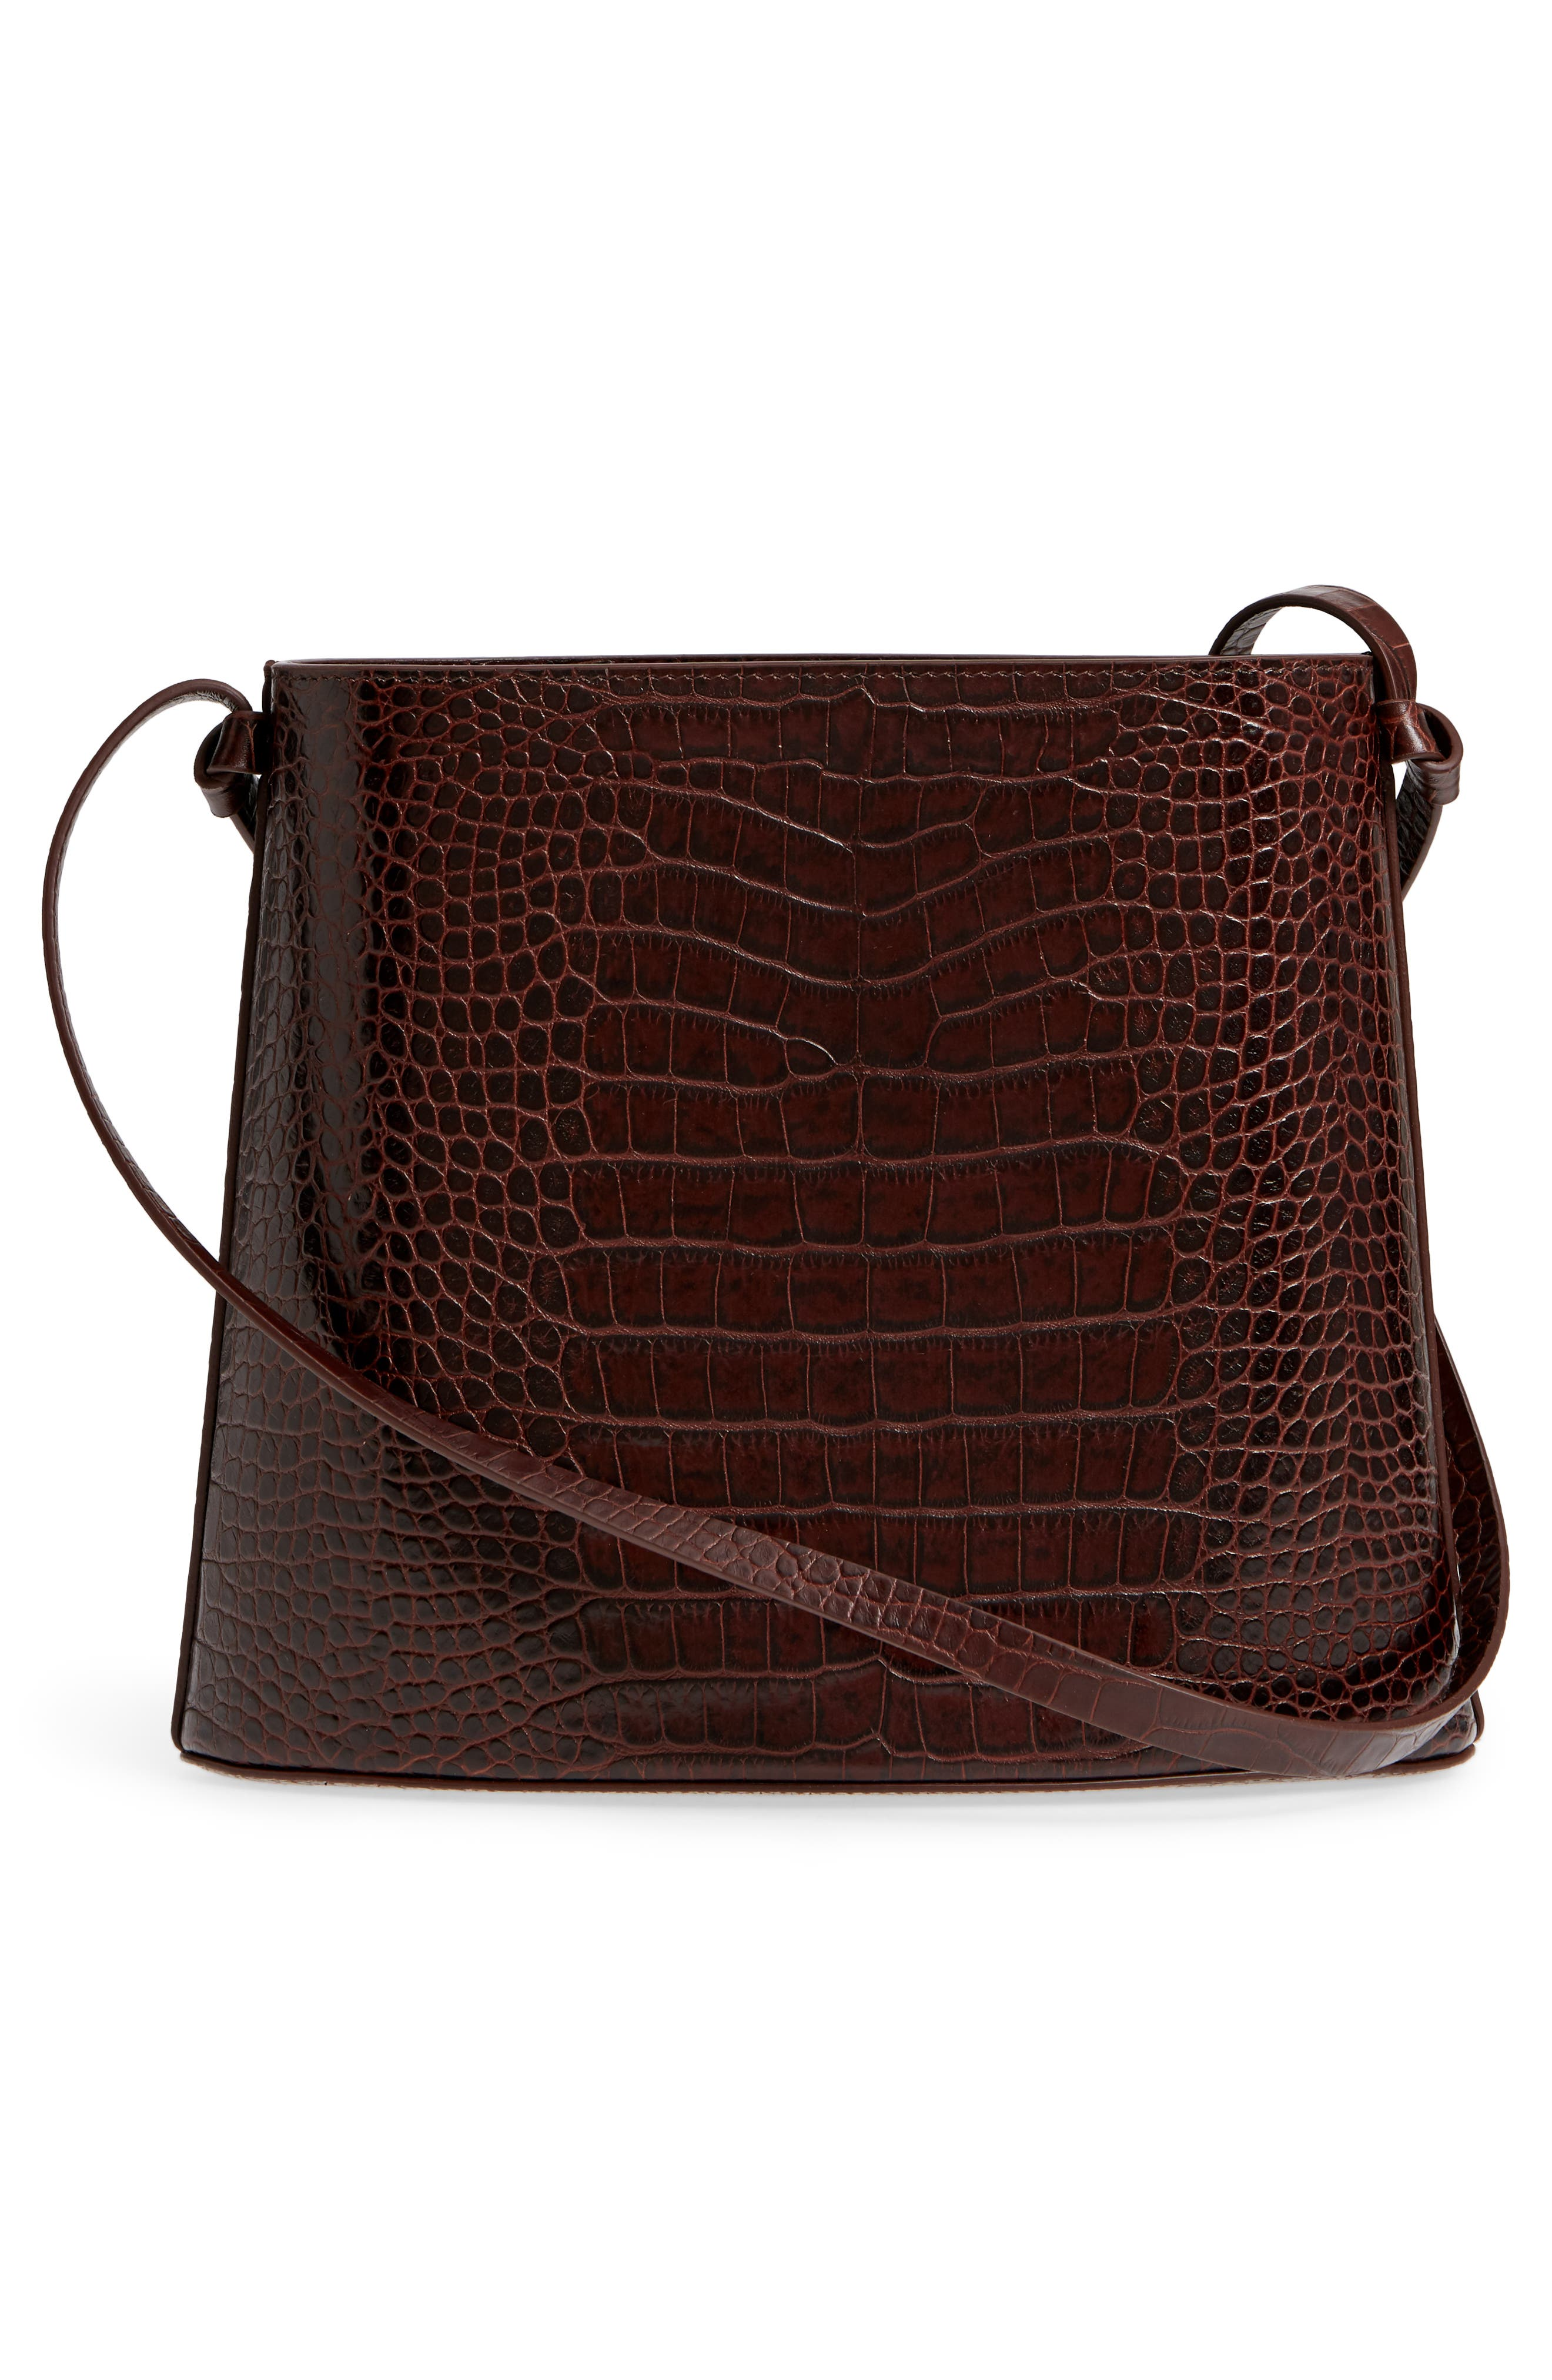 Sybil Croc Embossed Leather Tote,                             Alternate thumbnail 3, color,                             CHOCOLATE BROWN